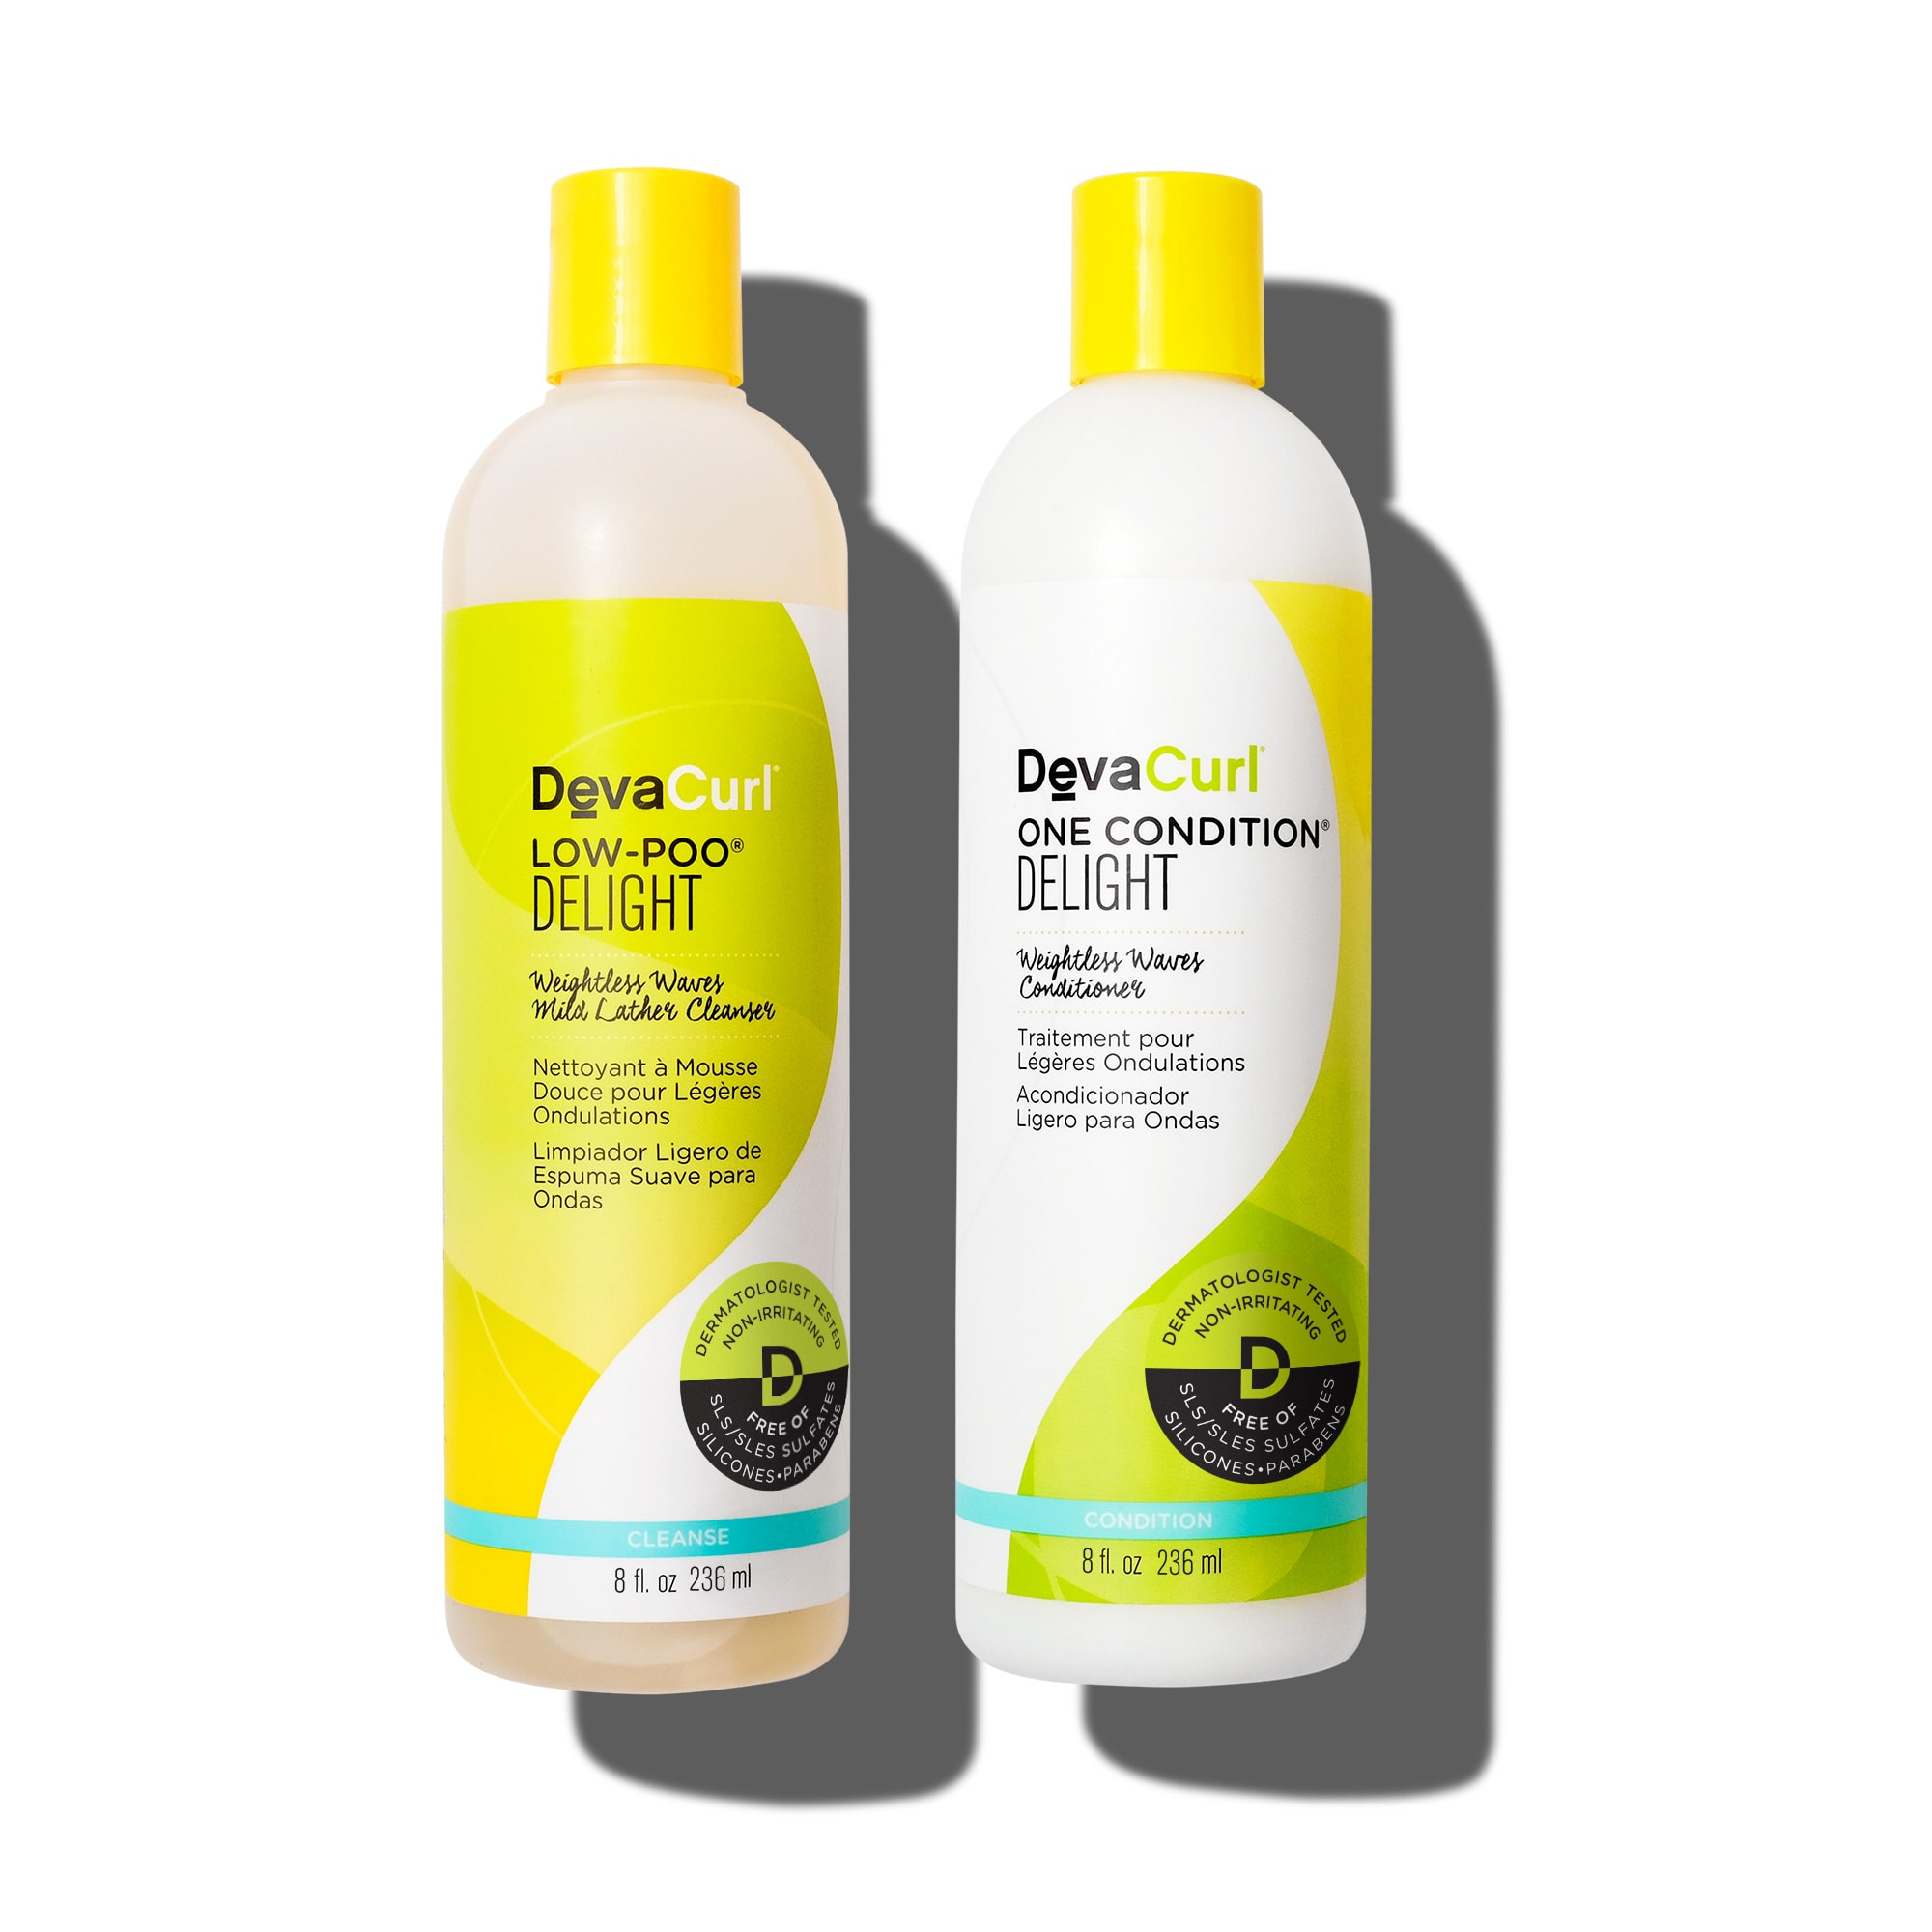 Low-Poo & One Condition Delight 8oz bottles